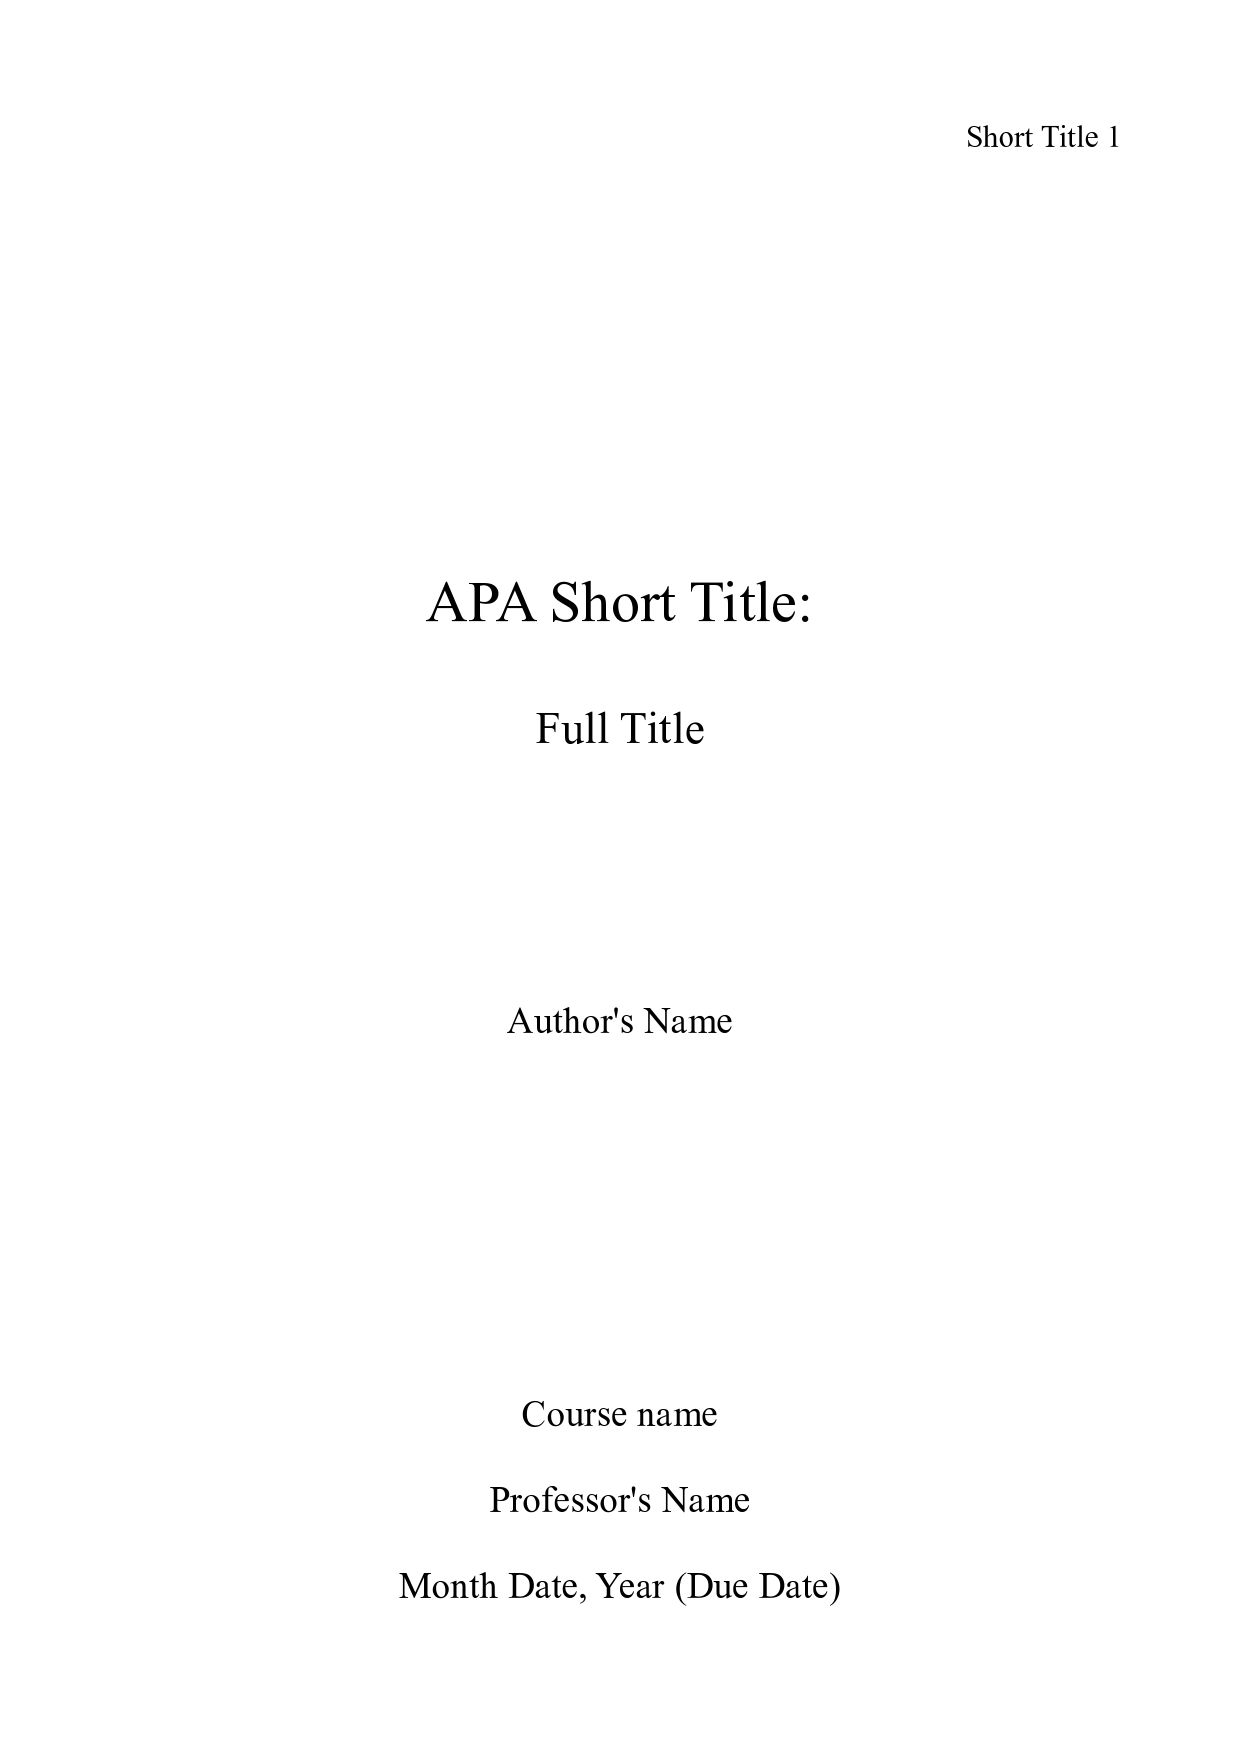 002 Apa Style Research Paper Cover Astounding Page Abstract Title Full